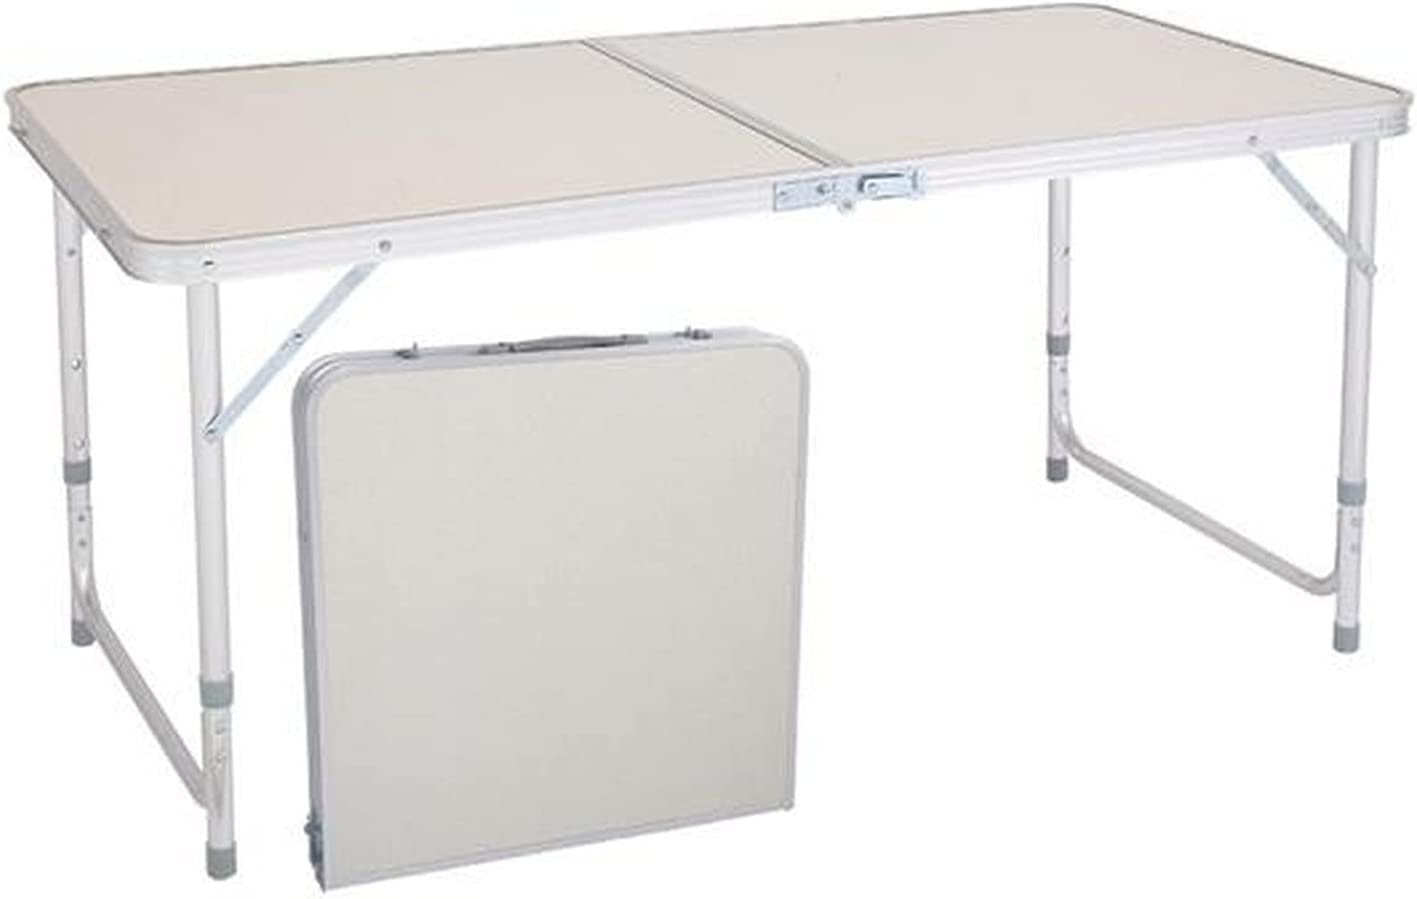 4Ft Aluminum Folding Picnic Height Adjustable Direct store Popularity Lightweight Table